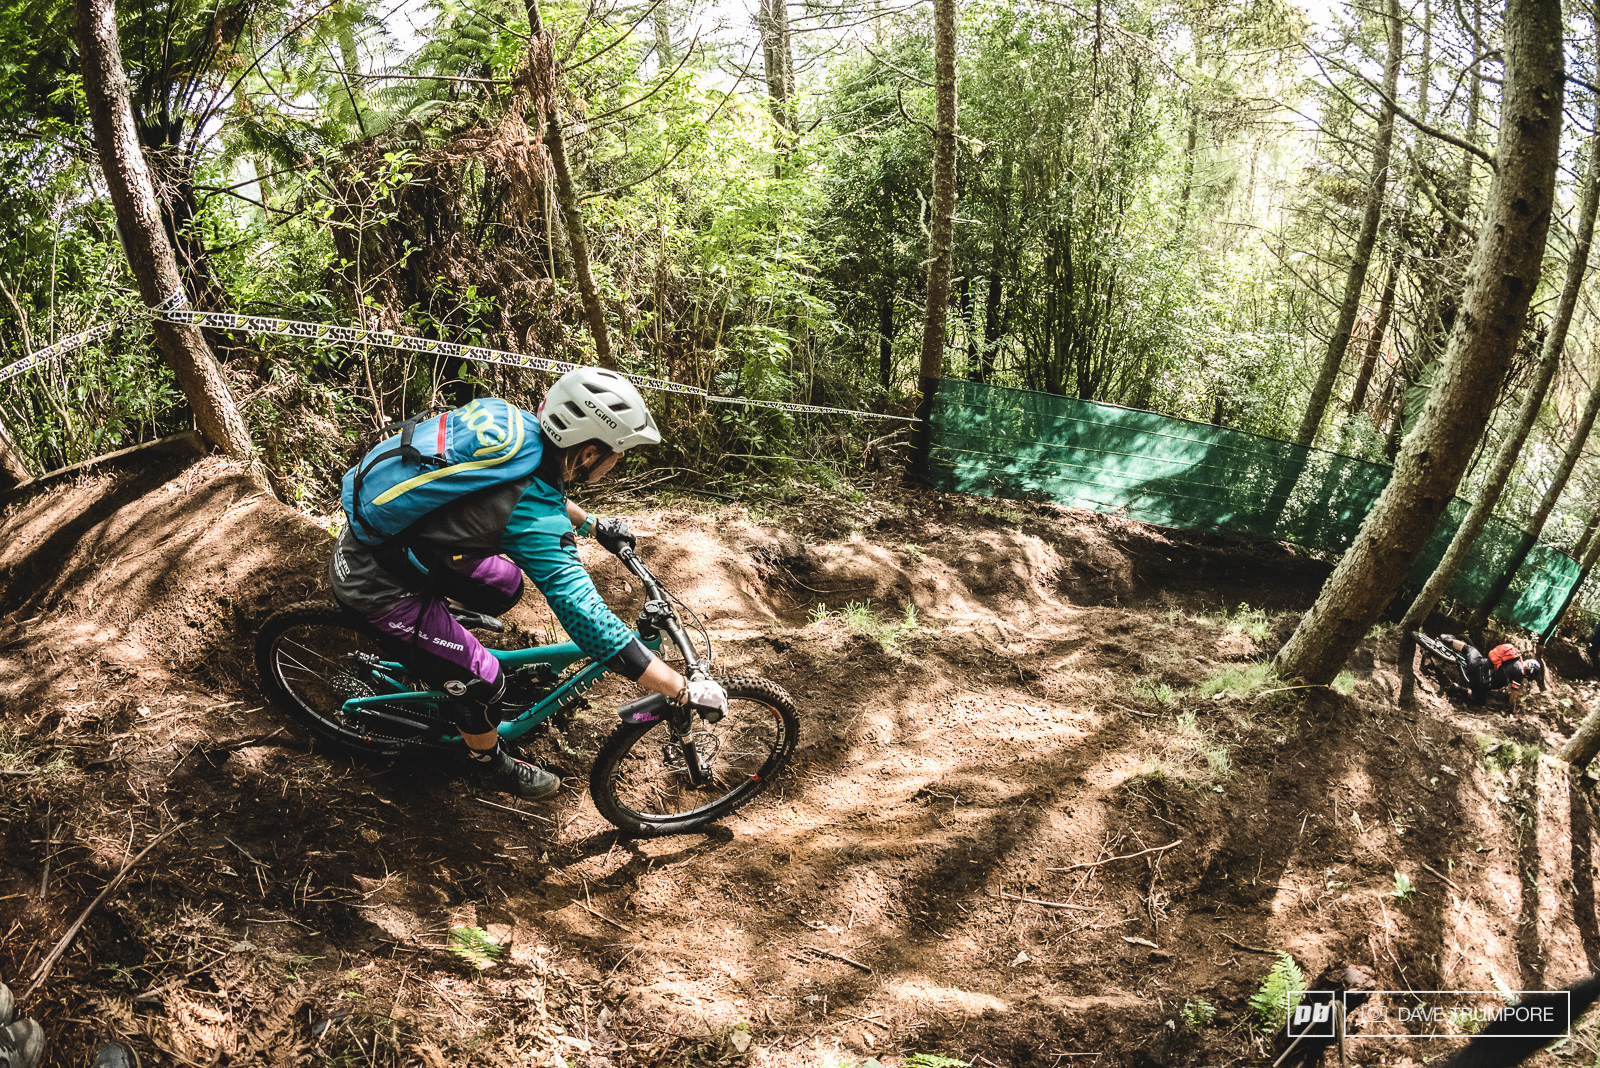 The last time Anka Martin rode this section of trail she was on a DH bike and racing the UCI World Champs in 2006